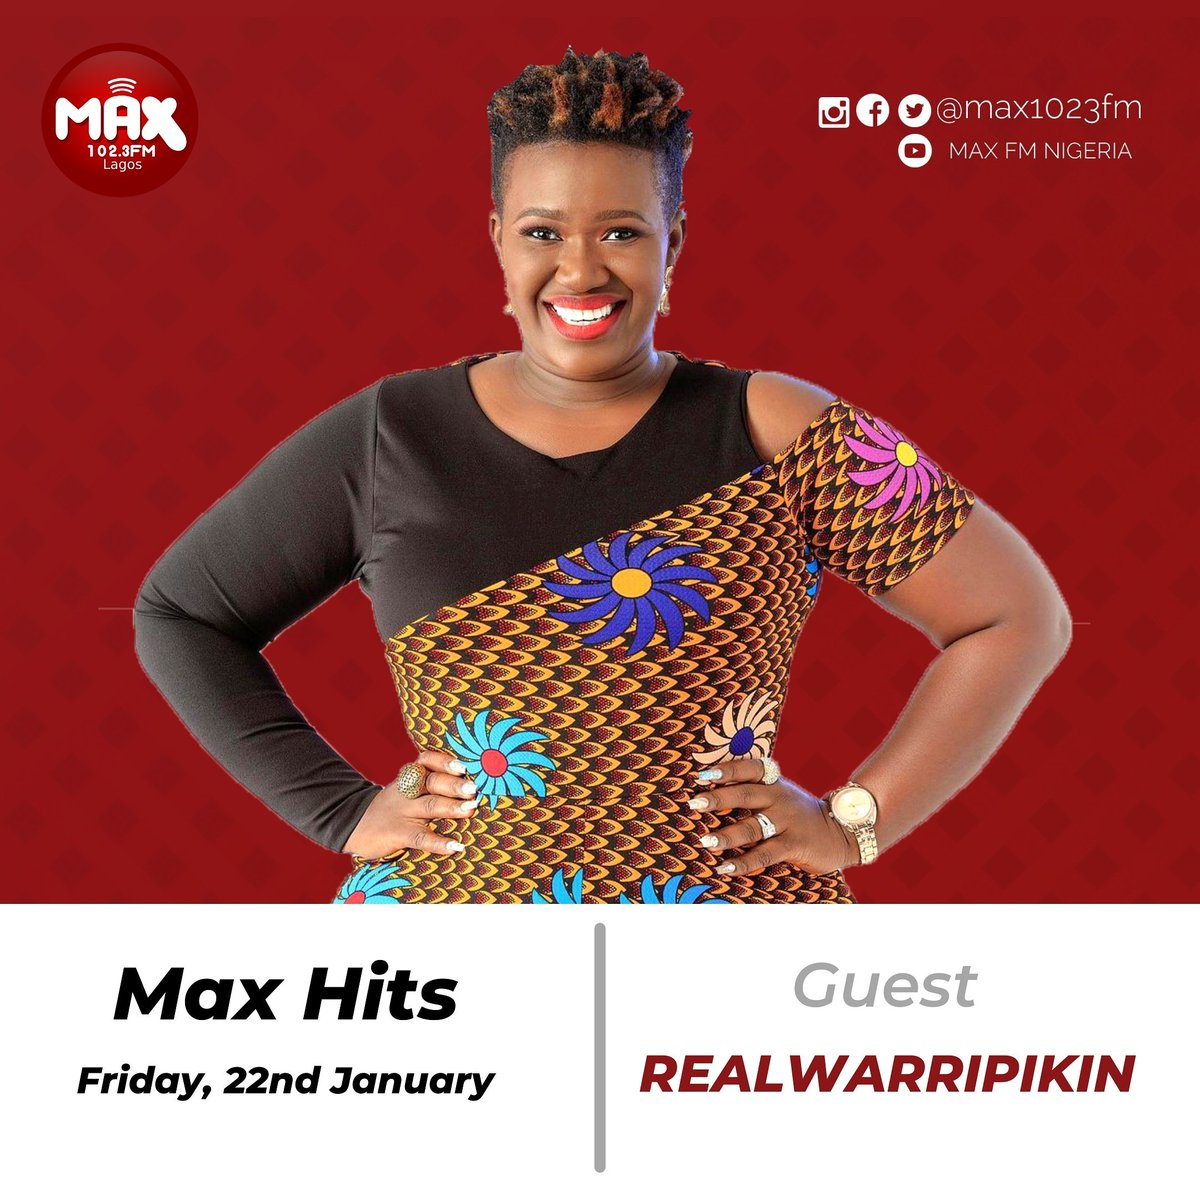 The multi-talented @drealwarripikin live in the building🔥🔥🔥 . You don't want to miss this! Tune in now!!!  #MaxHits Show with @iam_RealSkillz  and  @CeratheCera . . #realwarripikin #Max1023FM #Exclusiveonmax